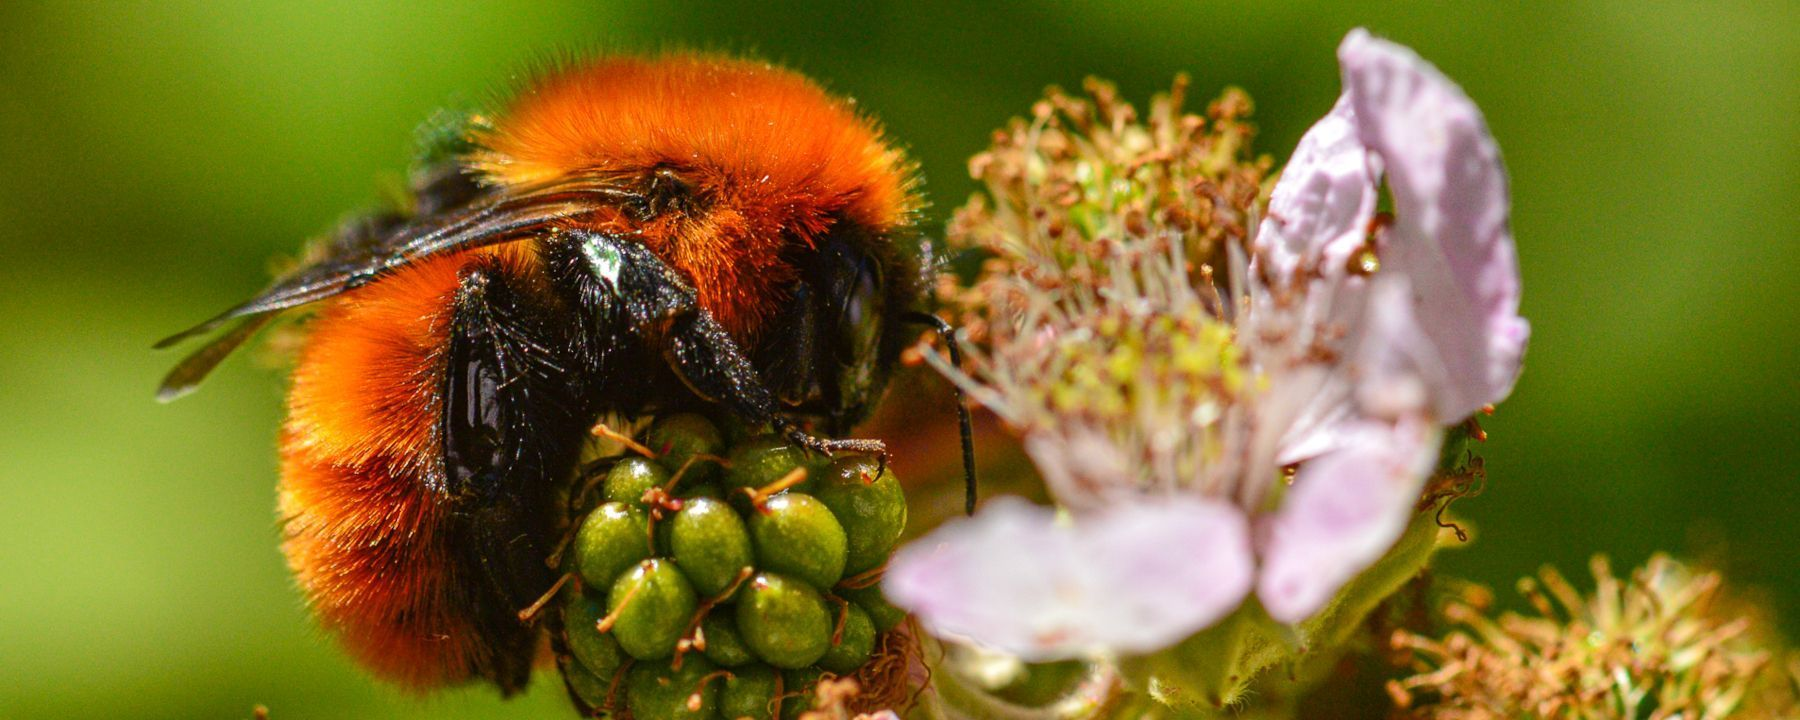 Bee Reports over the Past Century Indicate a Loss of Diversity